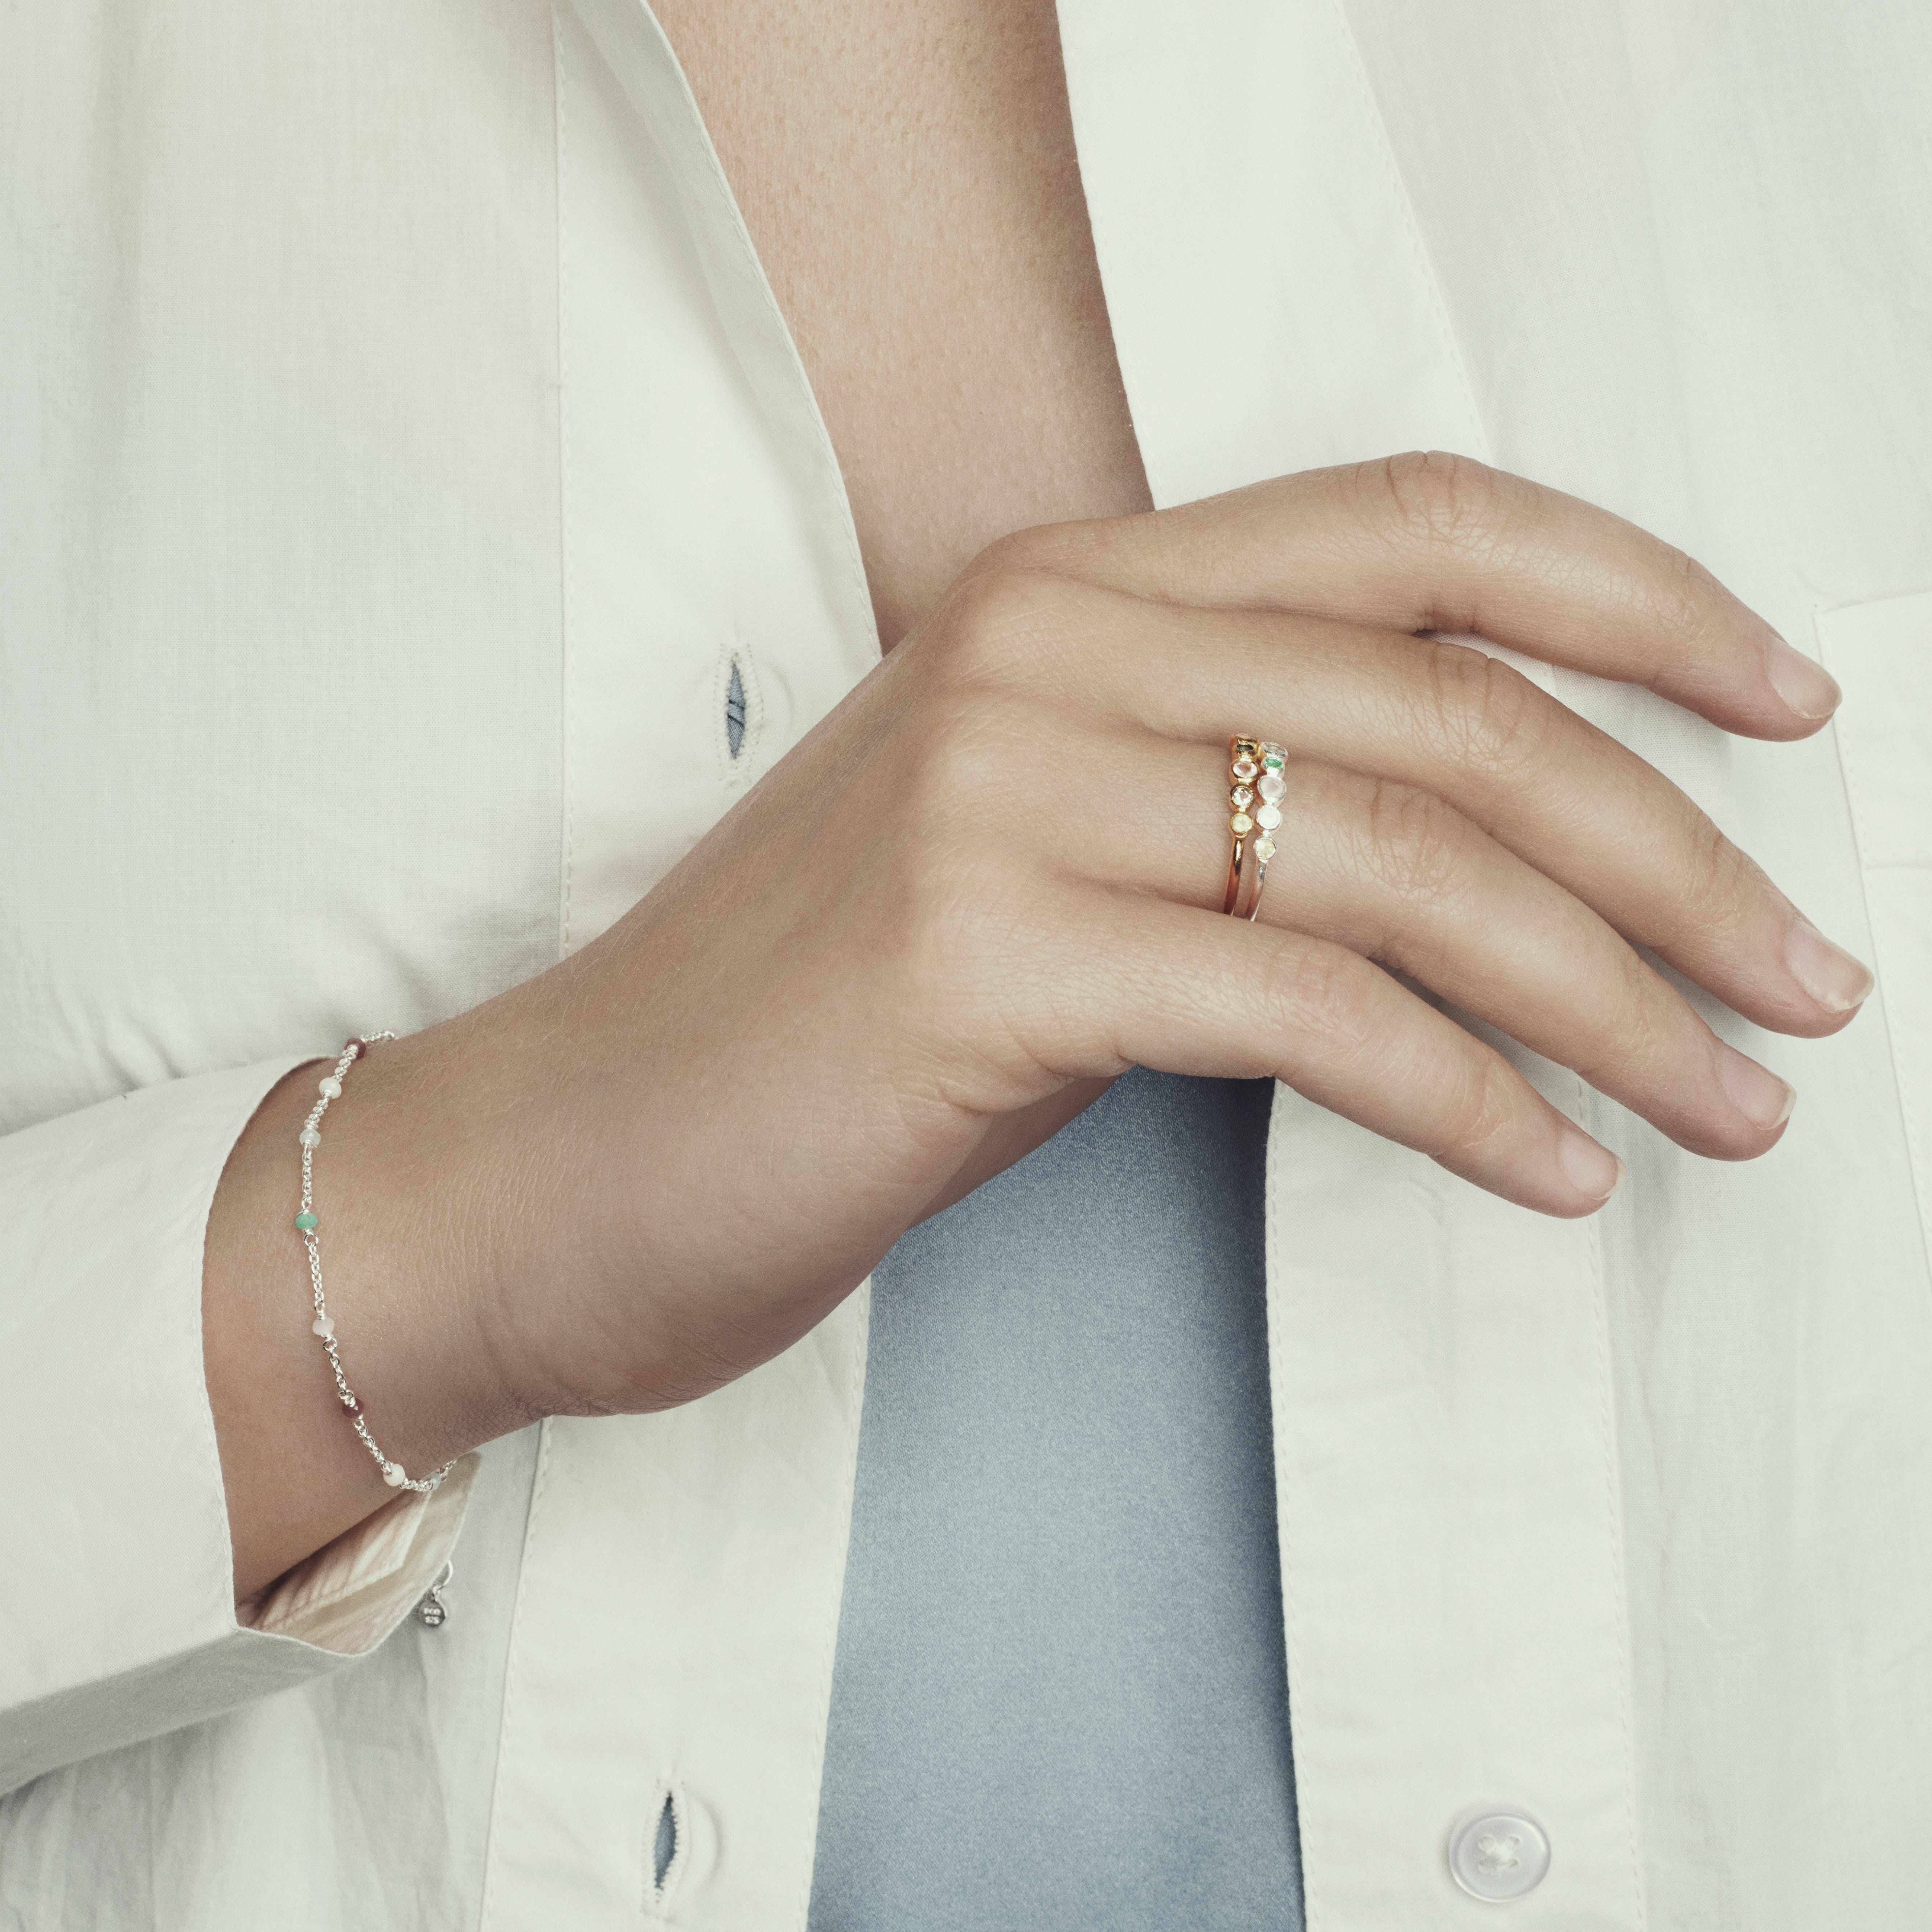 Calisto Bracelet from Pernille Corydon in Goldplated-Silver Sterling 925